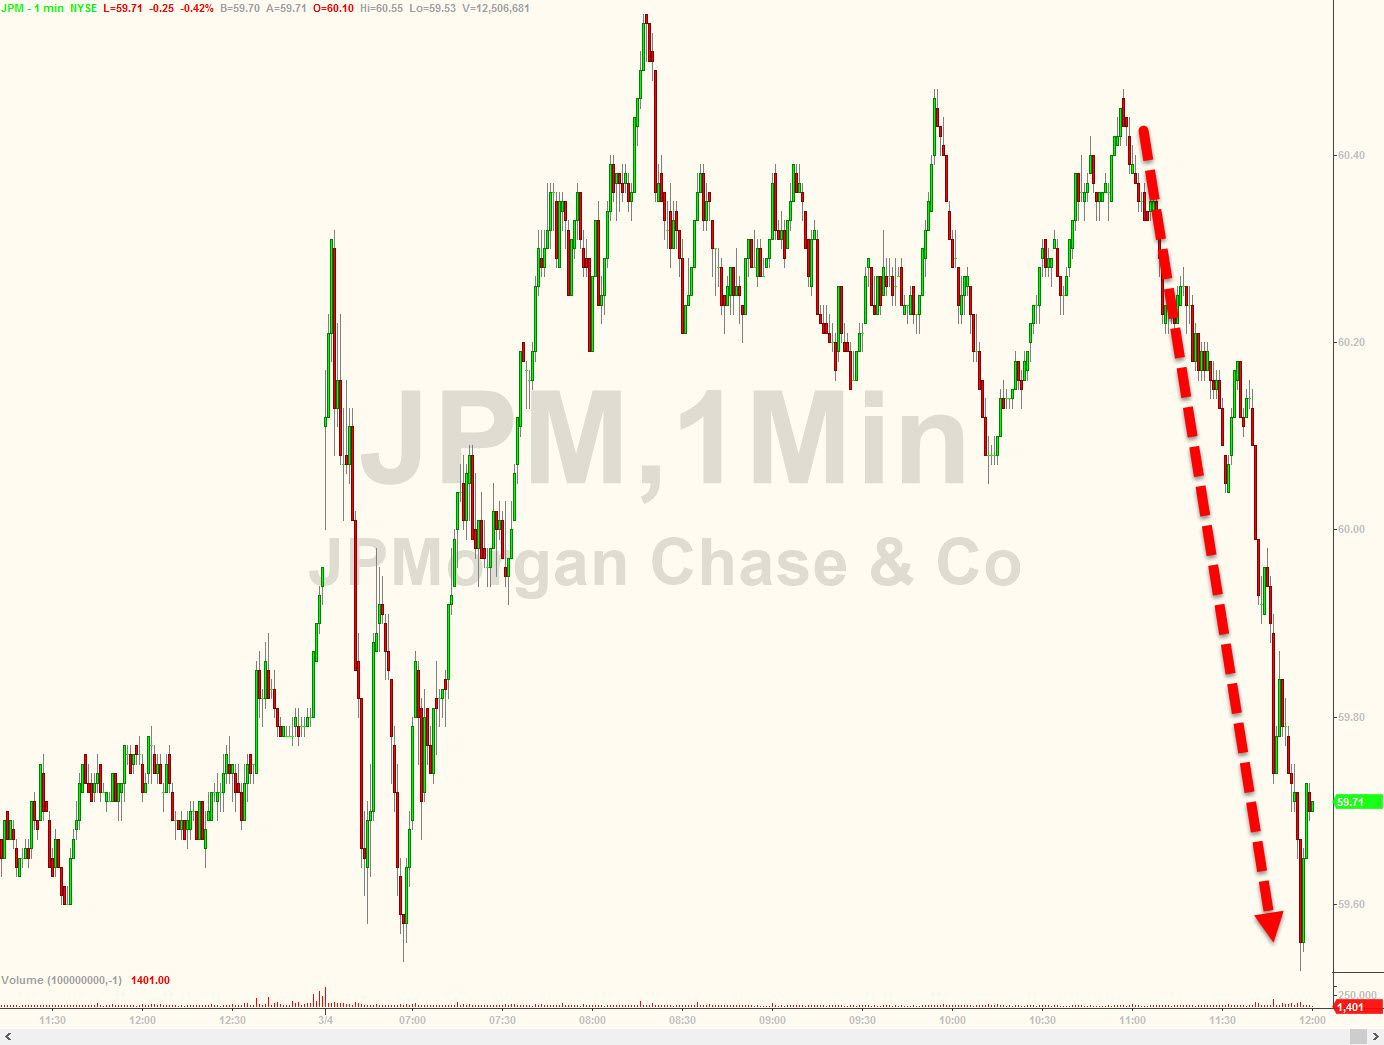 Stocks Tumble After Fed Plans TooBigToFail Bank Counterparty